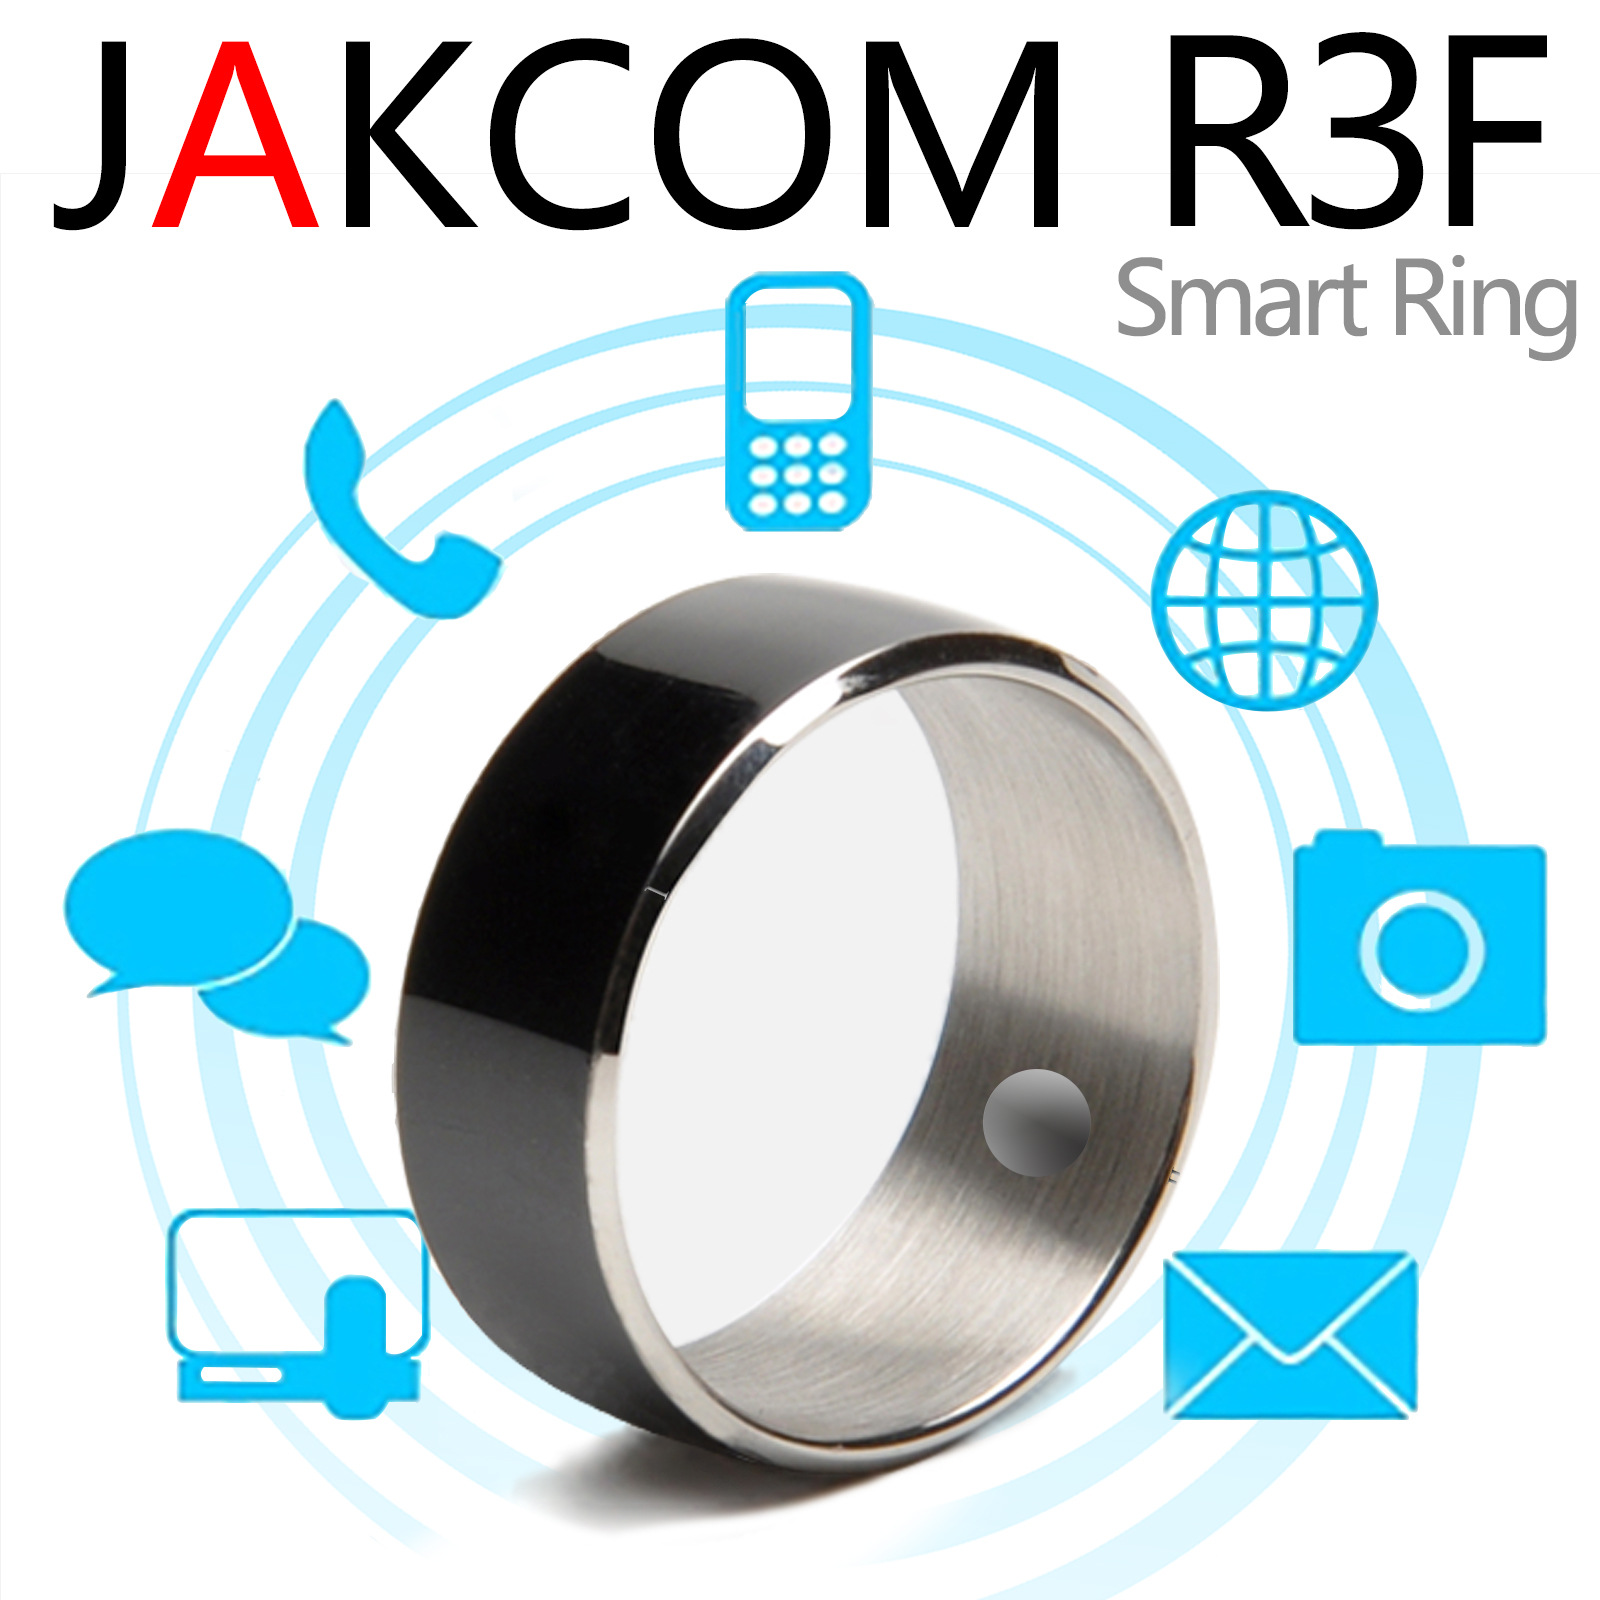 Jakcom R3F Smart Ring For High Speed NFC Electronics Phone Smart Accessories Enabled Wearable Technology Magic NFC Ring цена